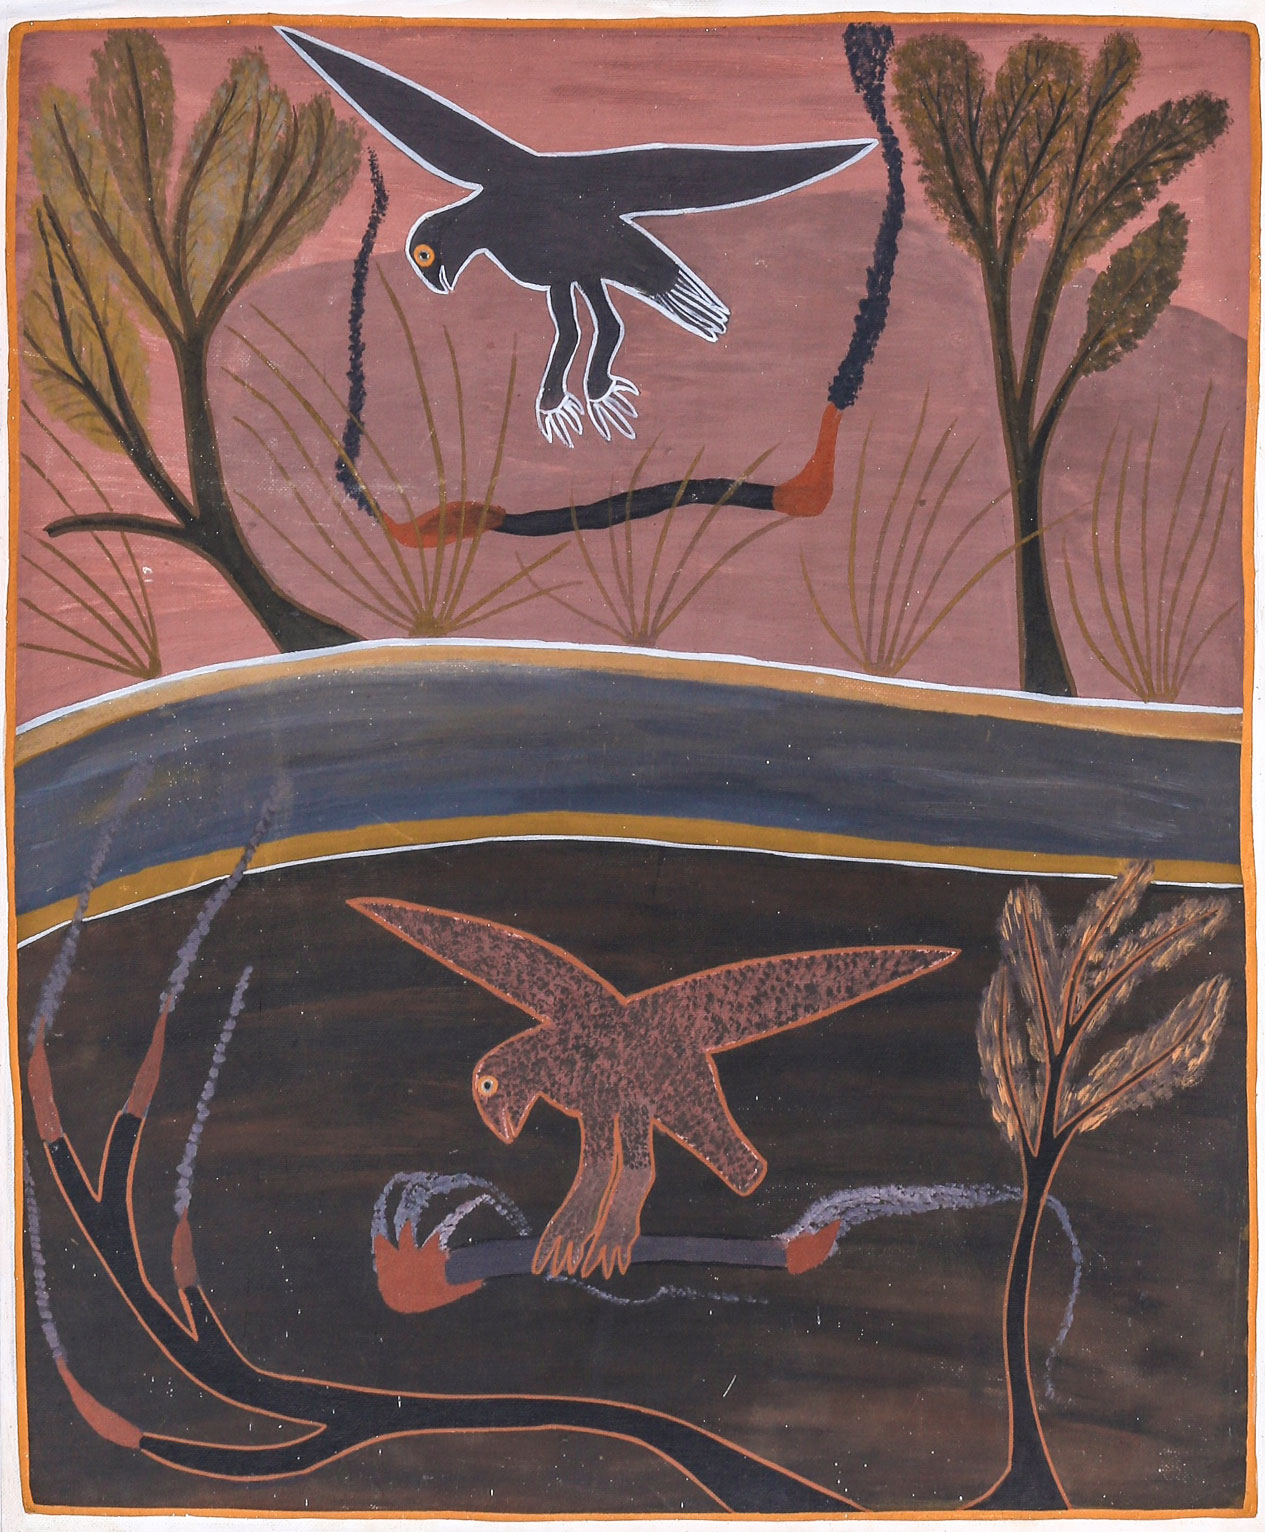 """Aboriginal drawing of the """"Karrkkanj"""" (local name for the Brown Falcon) depicts the bird carrying fire sticks to unburnt ground. Painting: Billy Yalawanga"""